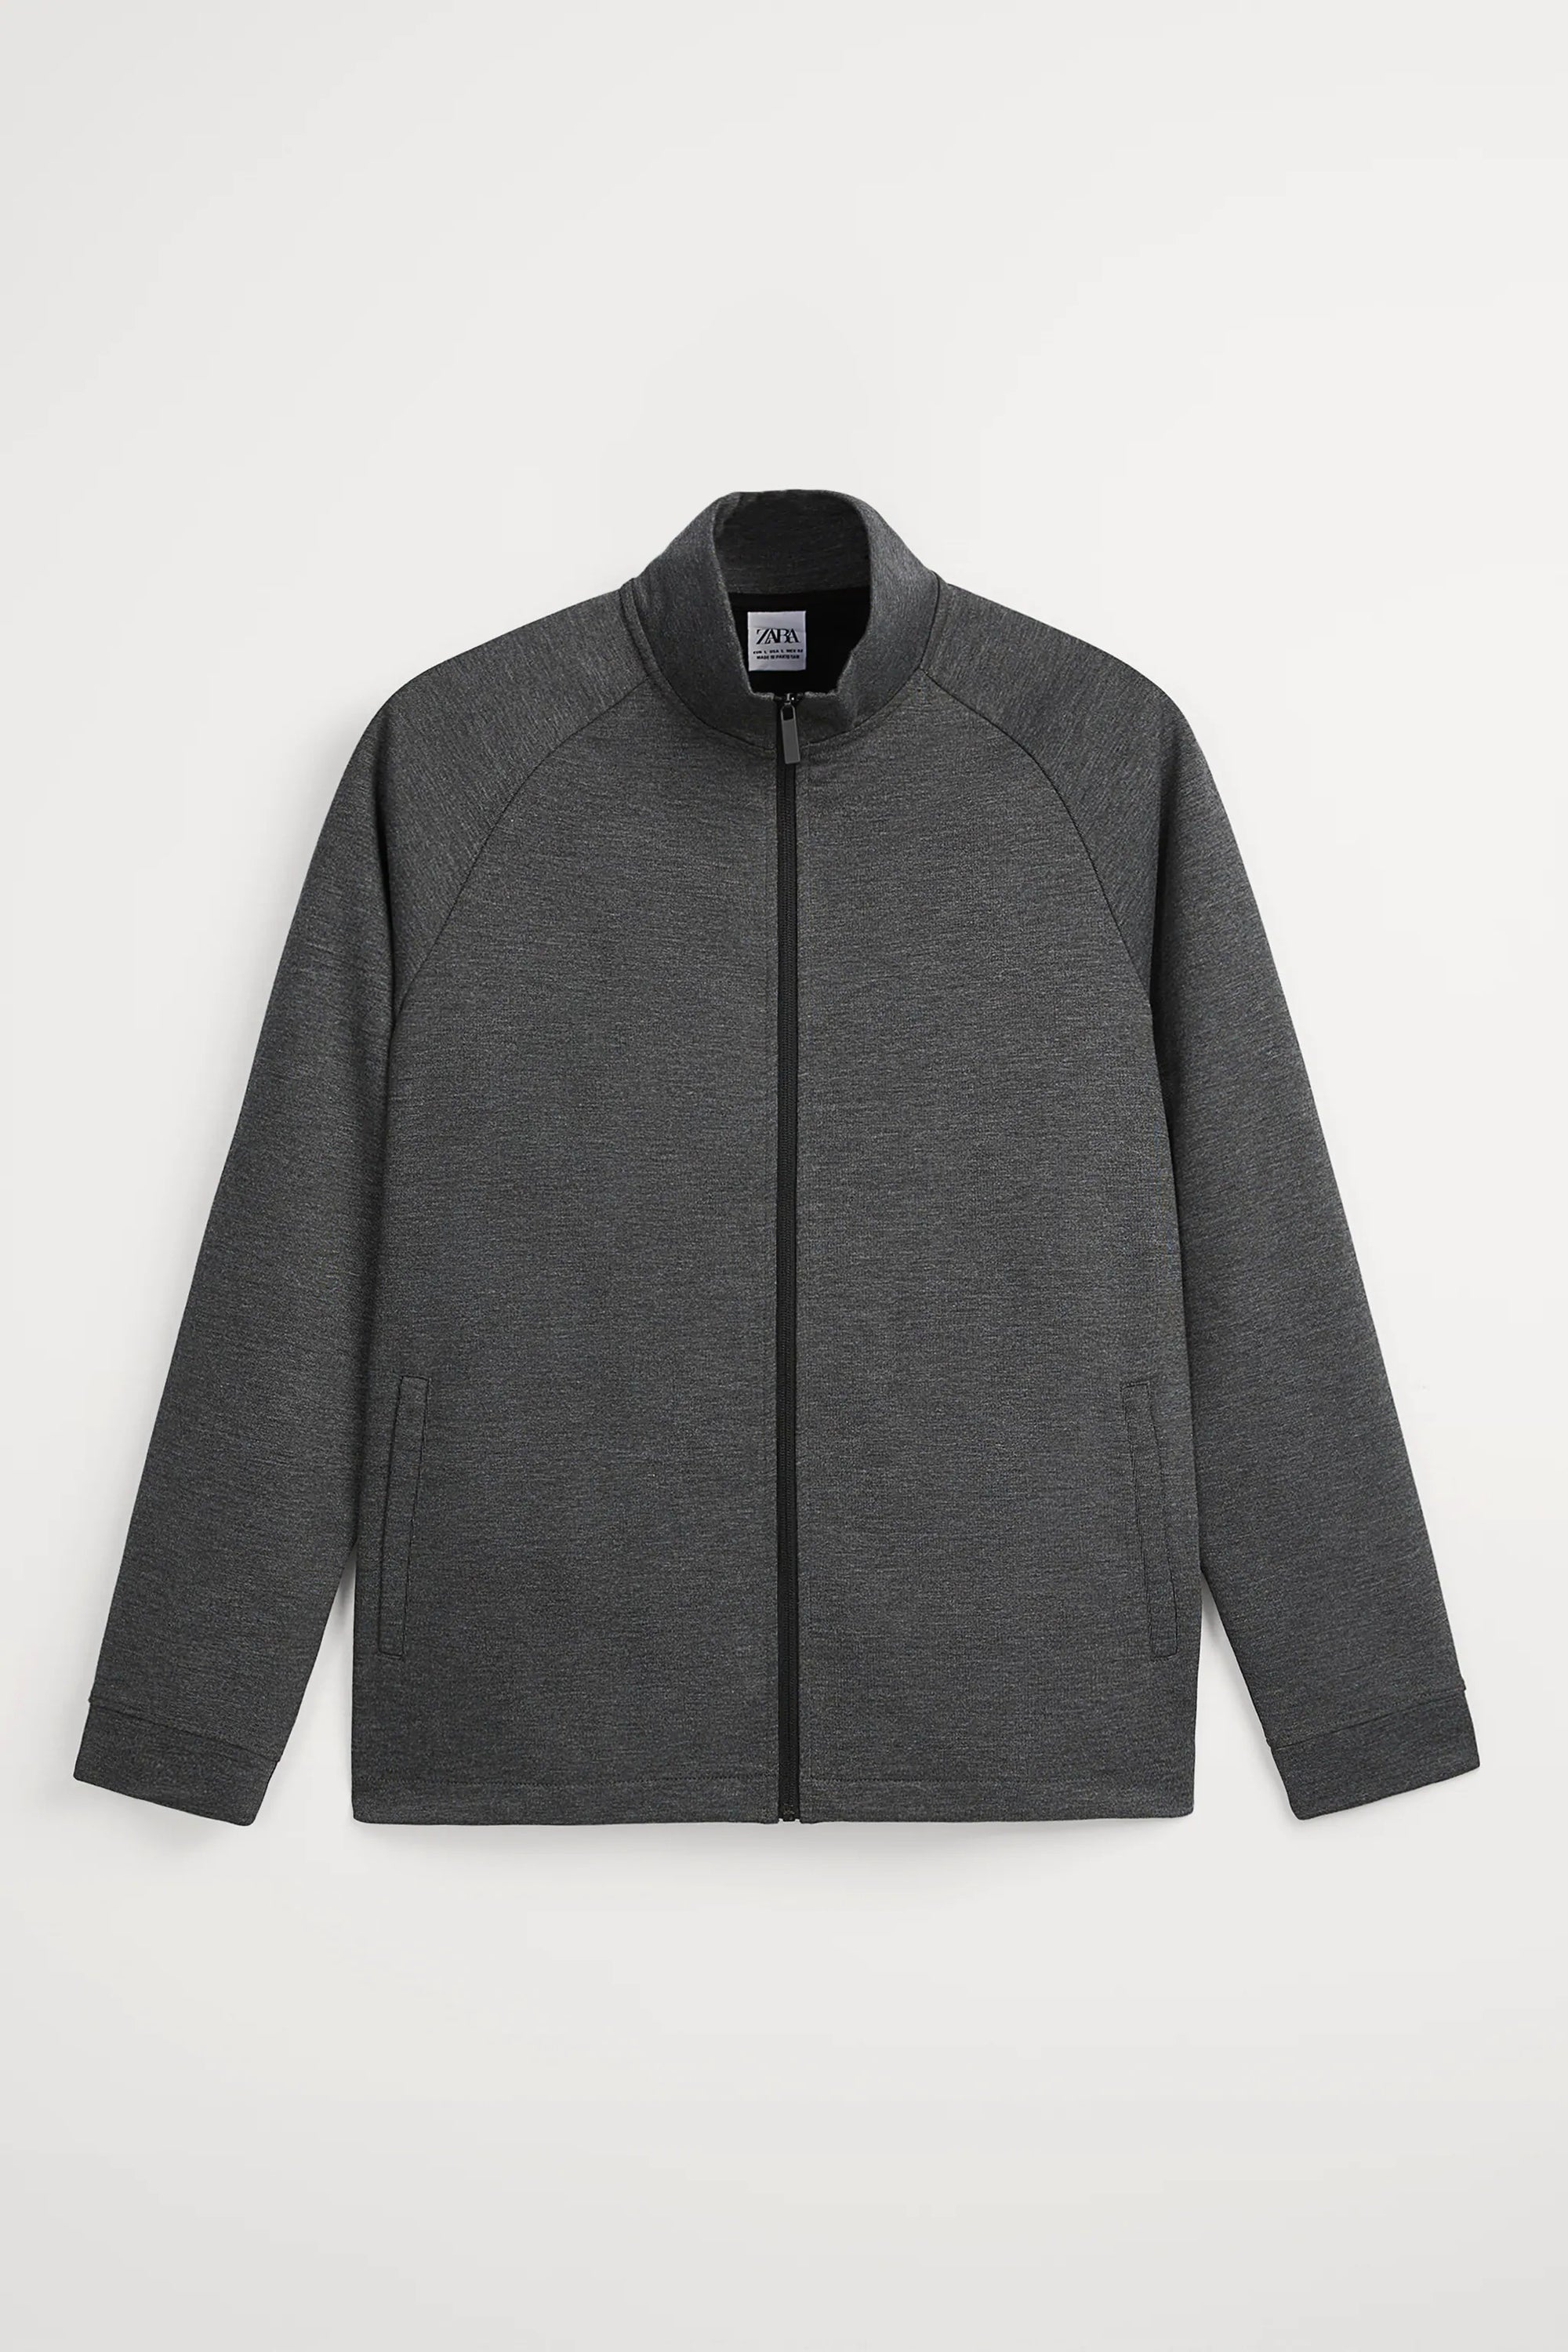 TECHNICAL FABRIC ANTHRACITE TRACK JACKET